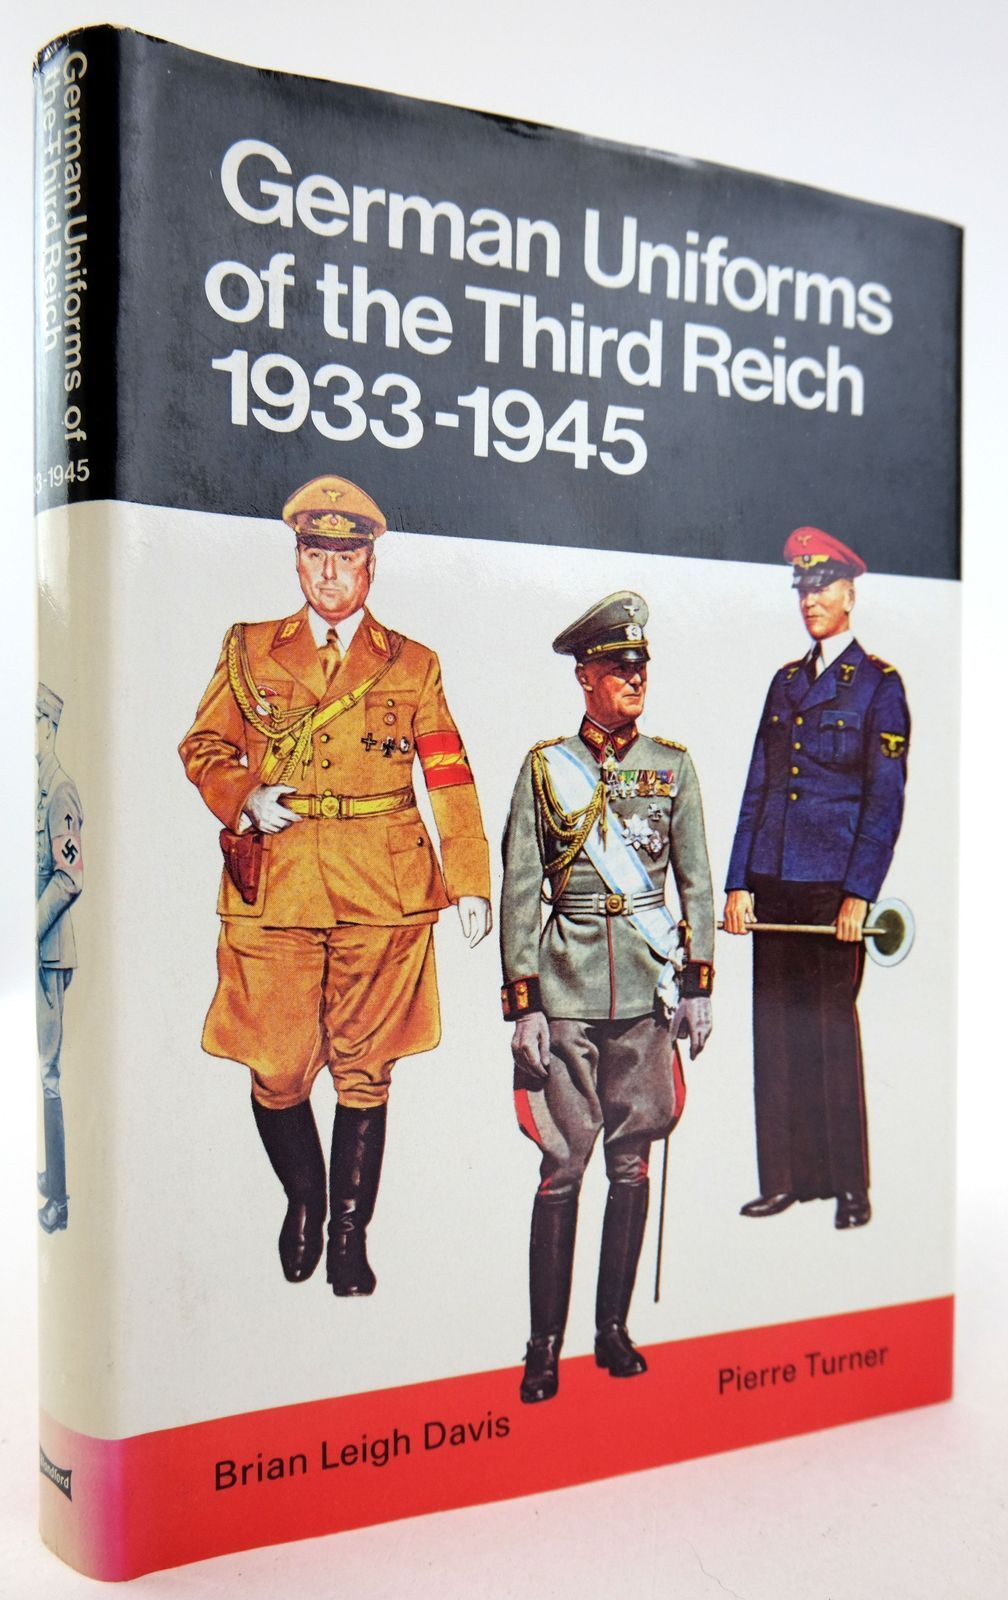 Photo of GERMAN UNIFORMS OF THE THIRD REICH 1933-1945 IN COLOUR written by Davis, Brian L. illustrated by Turner, Pierre published by Blandford Press (STOCK CODE: 1819660)  for sale by Stella & Rose's Books